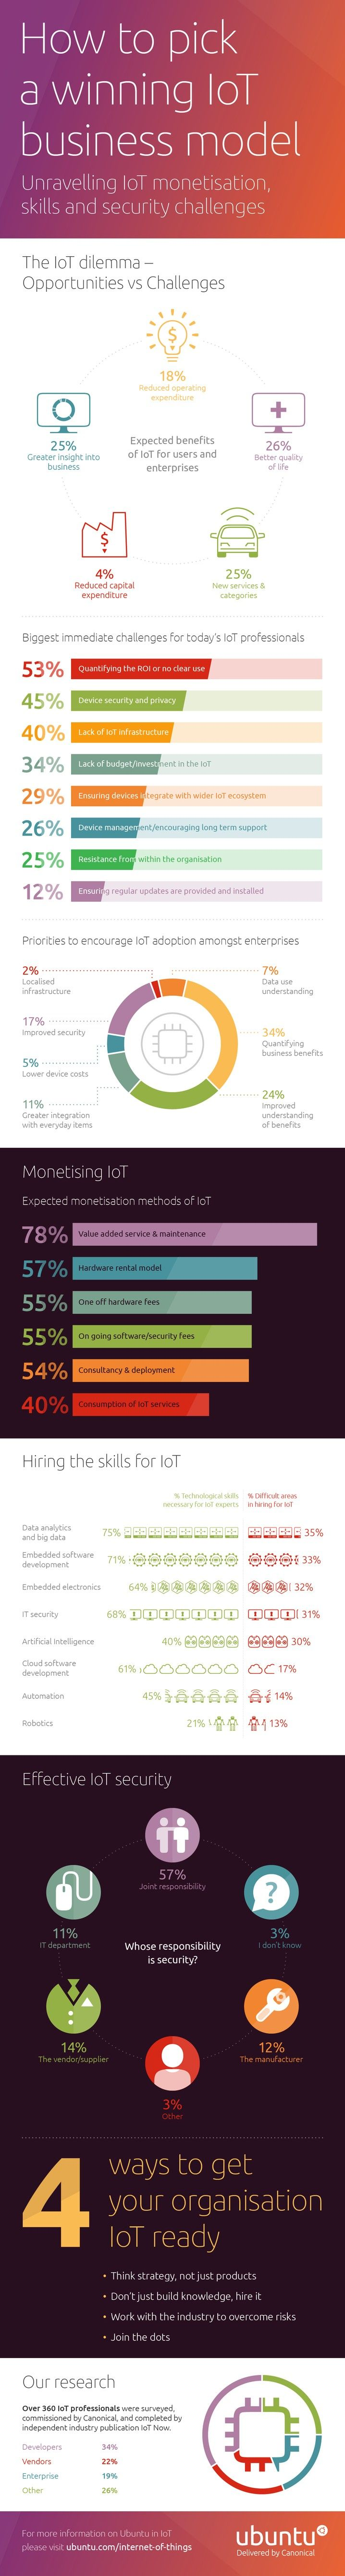 Canonical_IoT-Business-Models_infographic